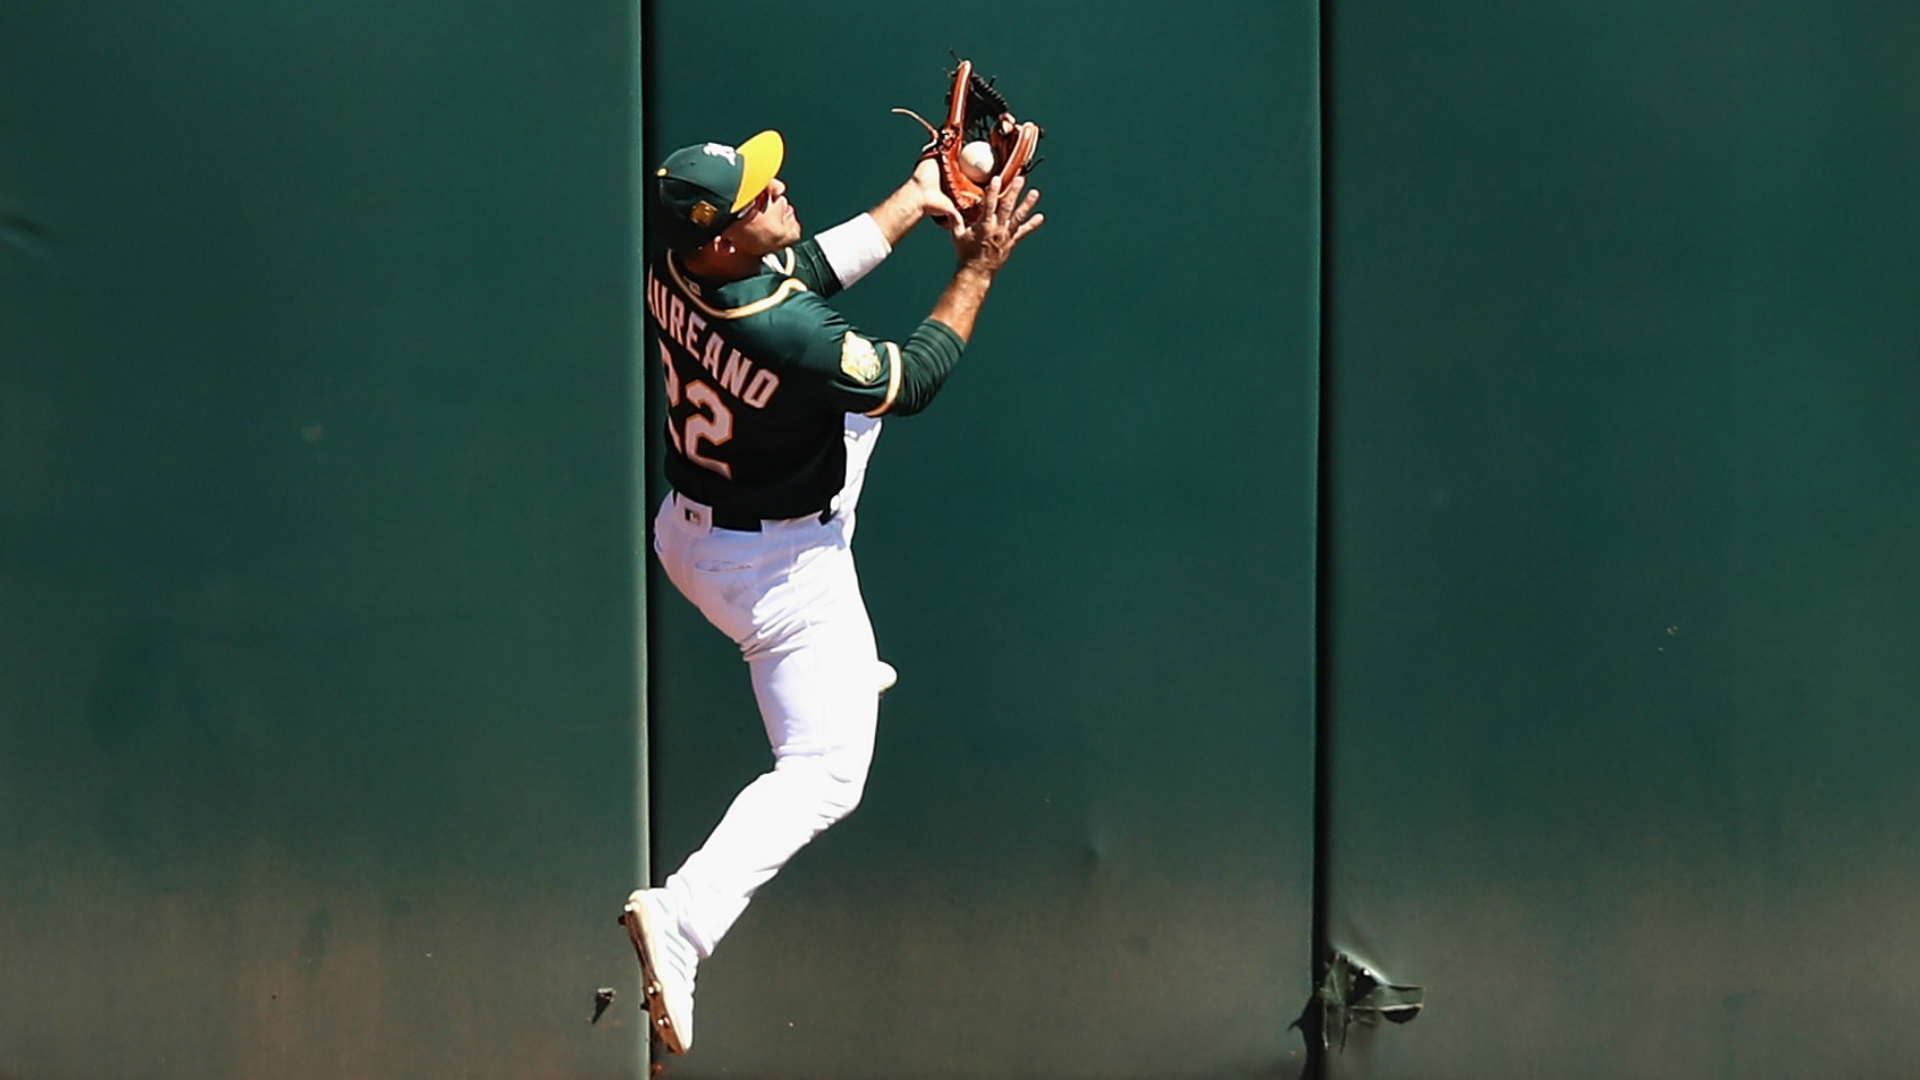 Ramon Laureano suspended: why A's outfielder was suspended, what it means for Oakland